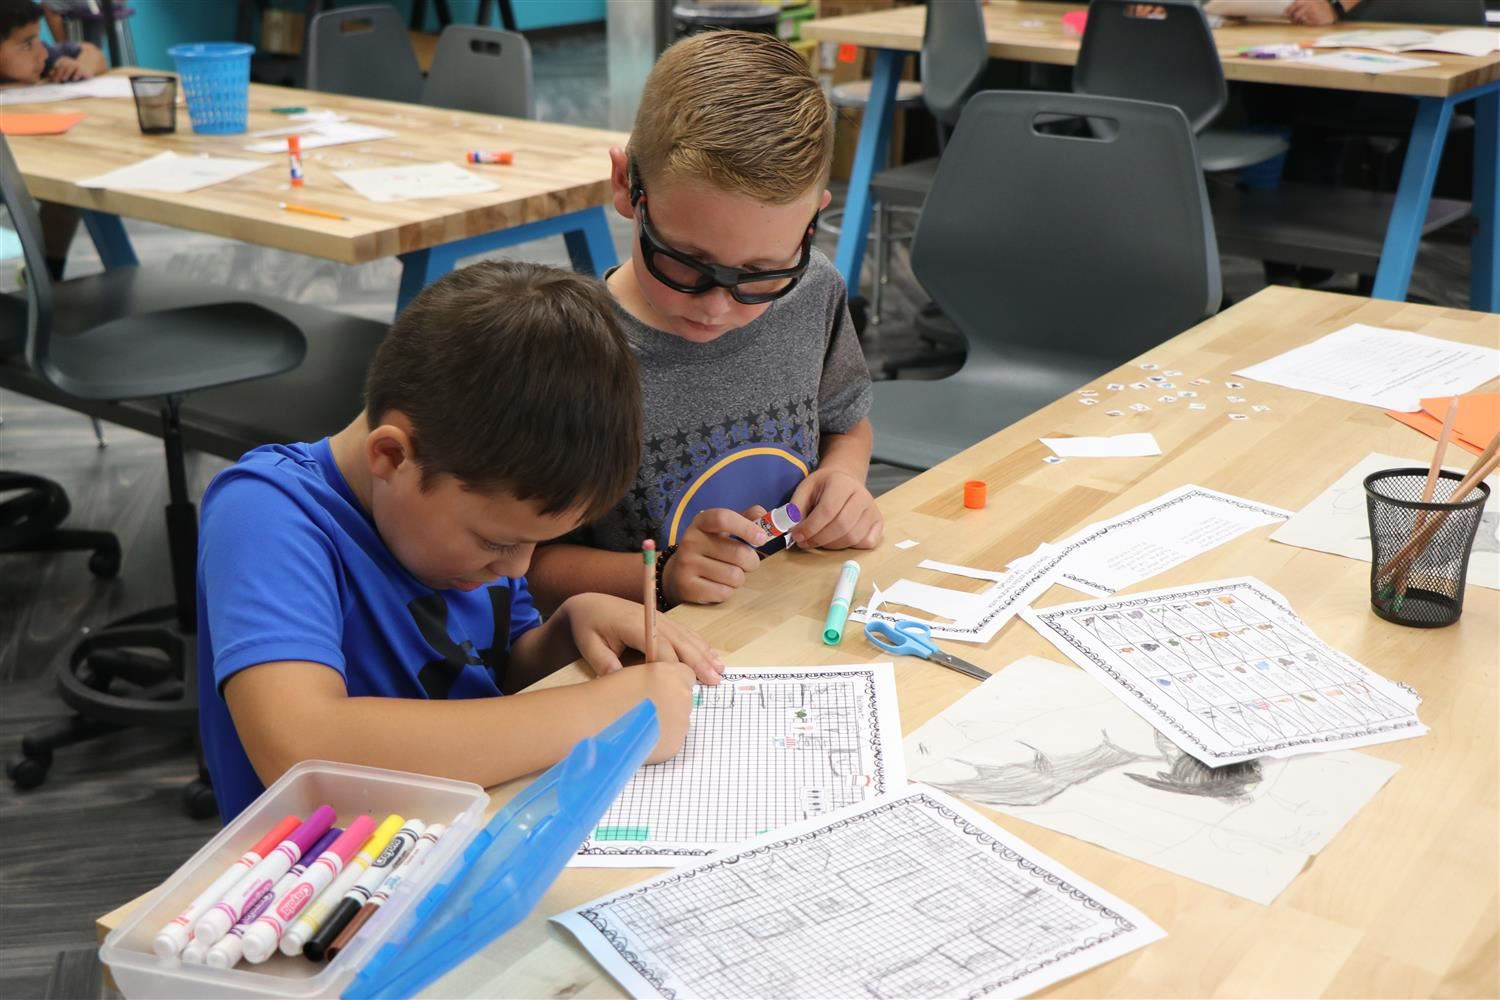 Two boys work on designing a zoo on a table in their new maker space.